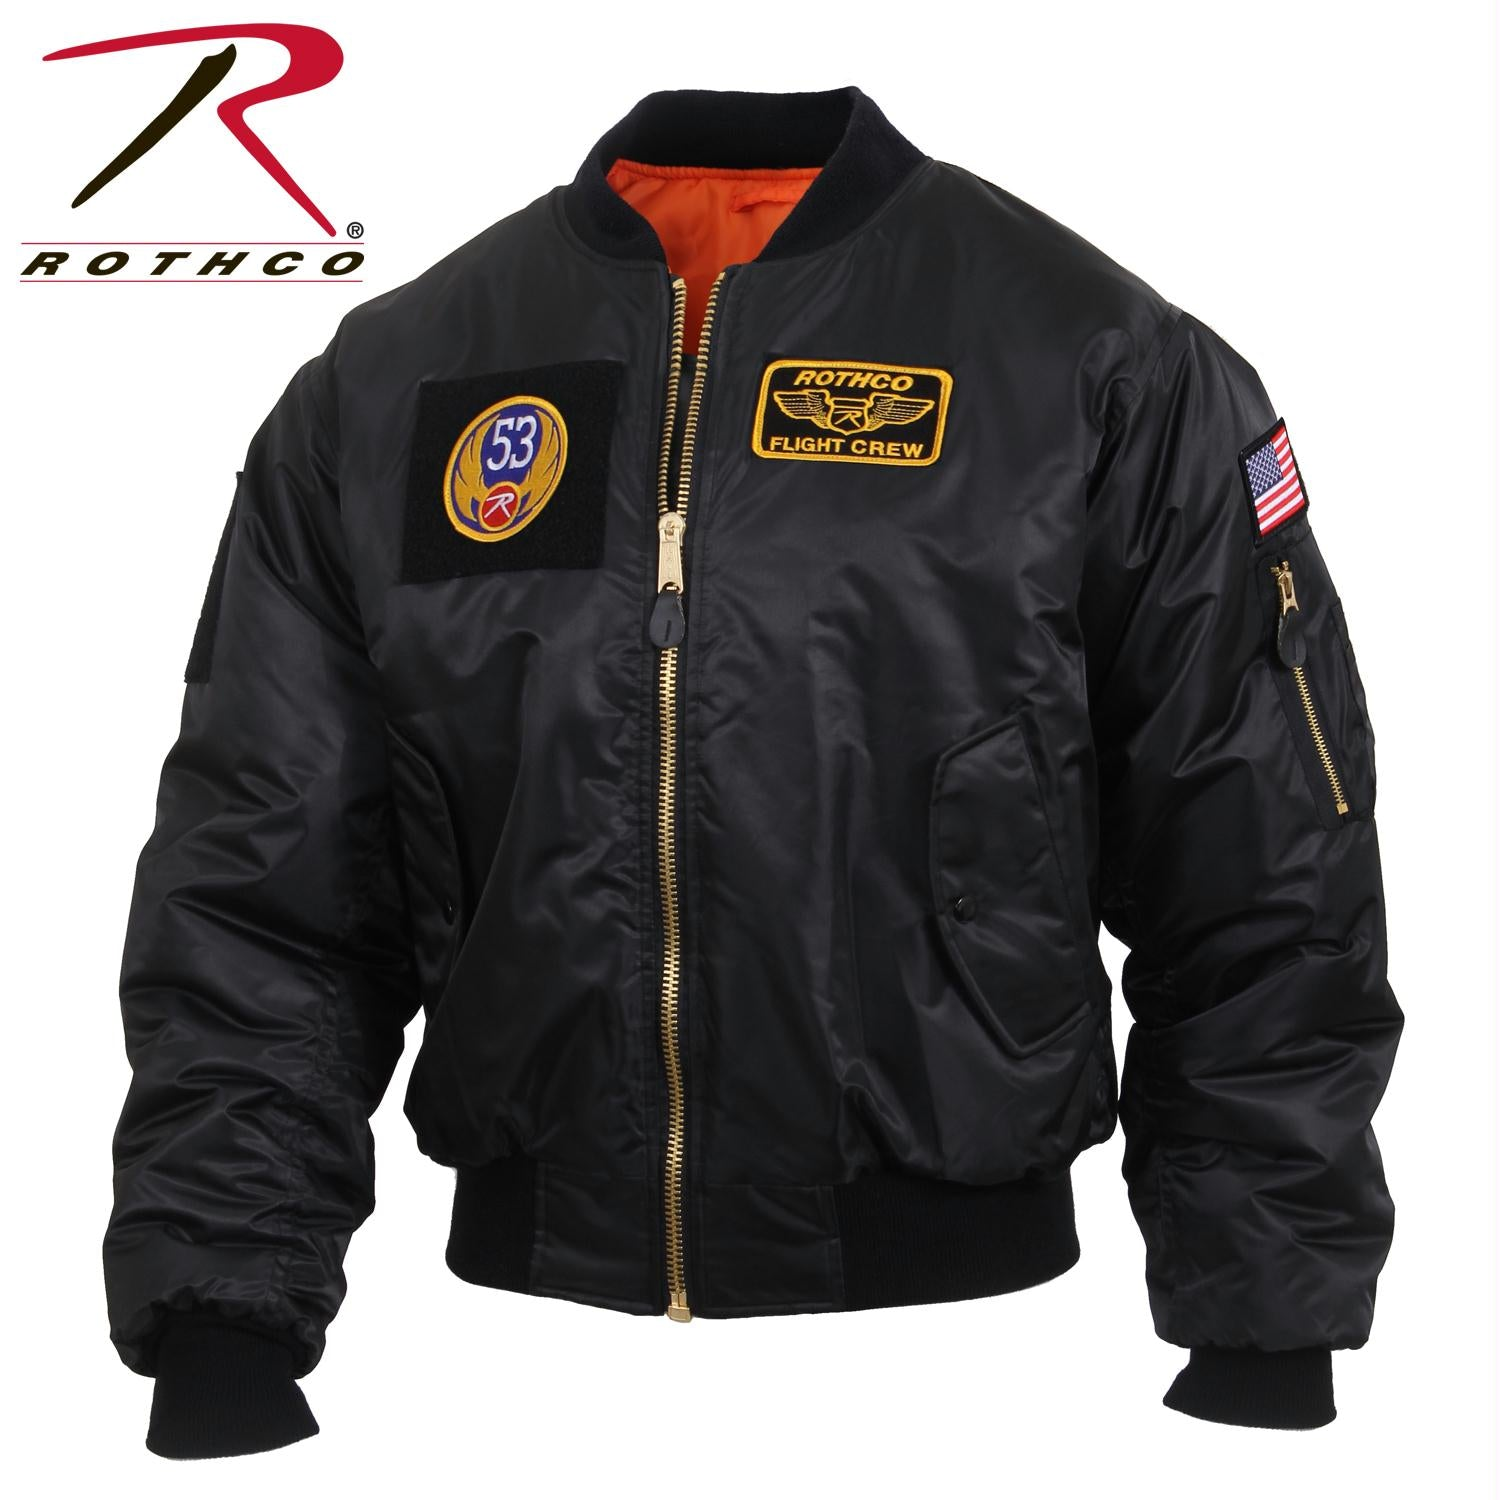 Rothco MA-1 Flight Jacket with Patches - Black / XS